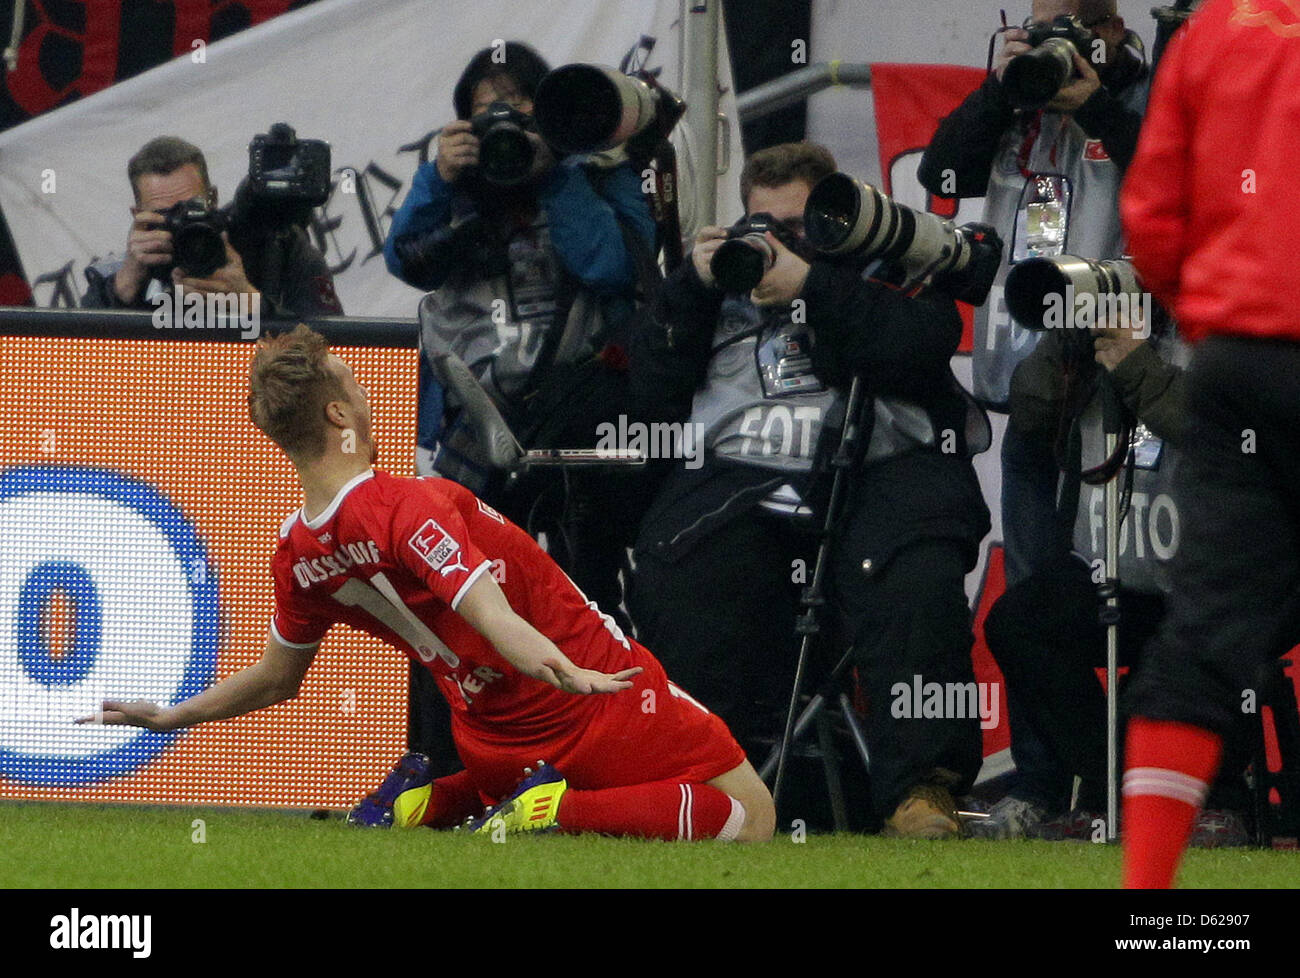 Duesseldorf's Maximilian Beister cheers after scoring the 1-0 goal during the Bundesliga soccer match between - Stock Image